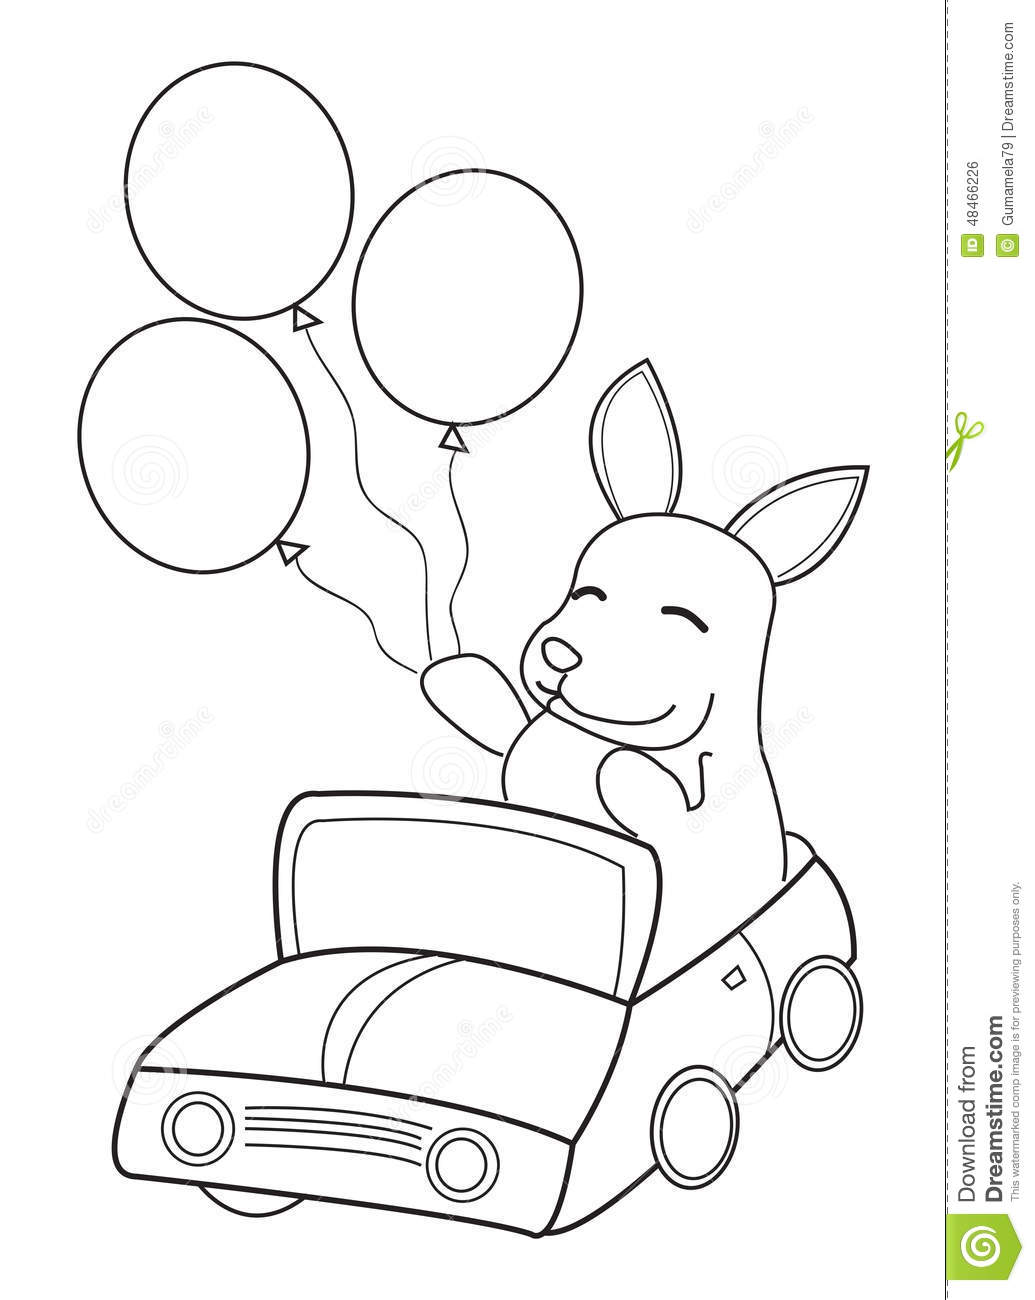 hand drawn coloring page of a bunny riding in a car with balloons